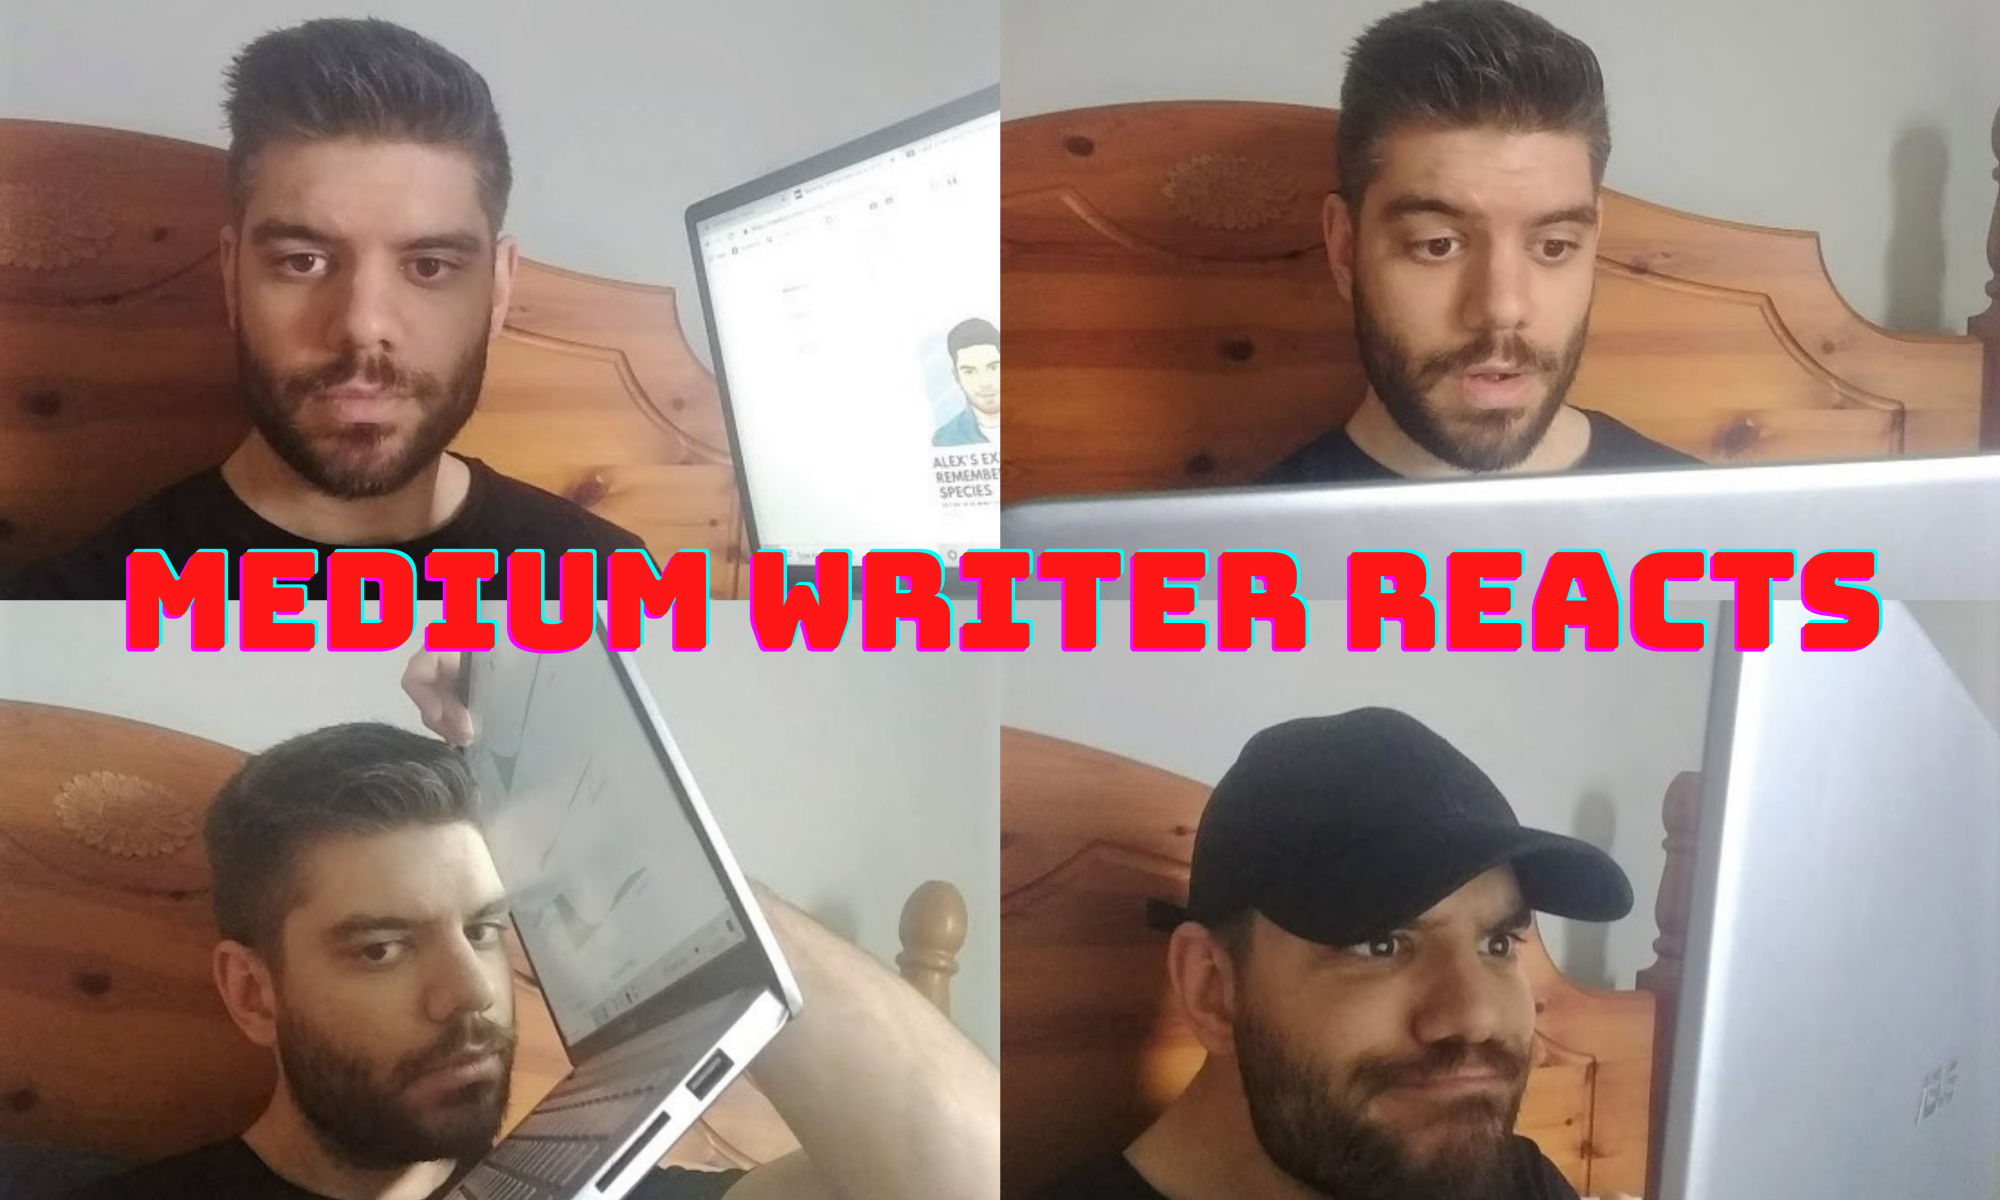 medium writer reacts to his medium articles, making funny faces